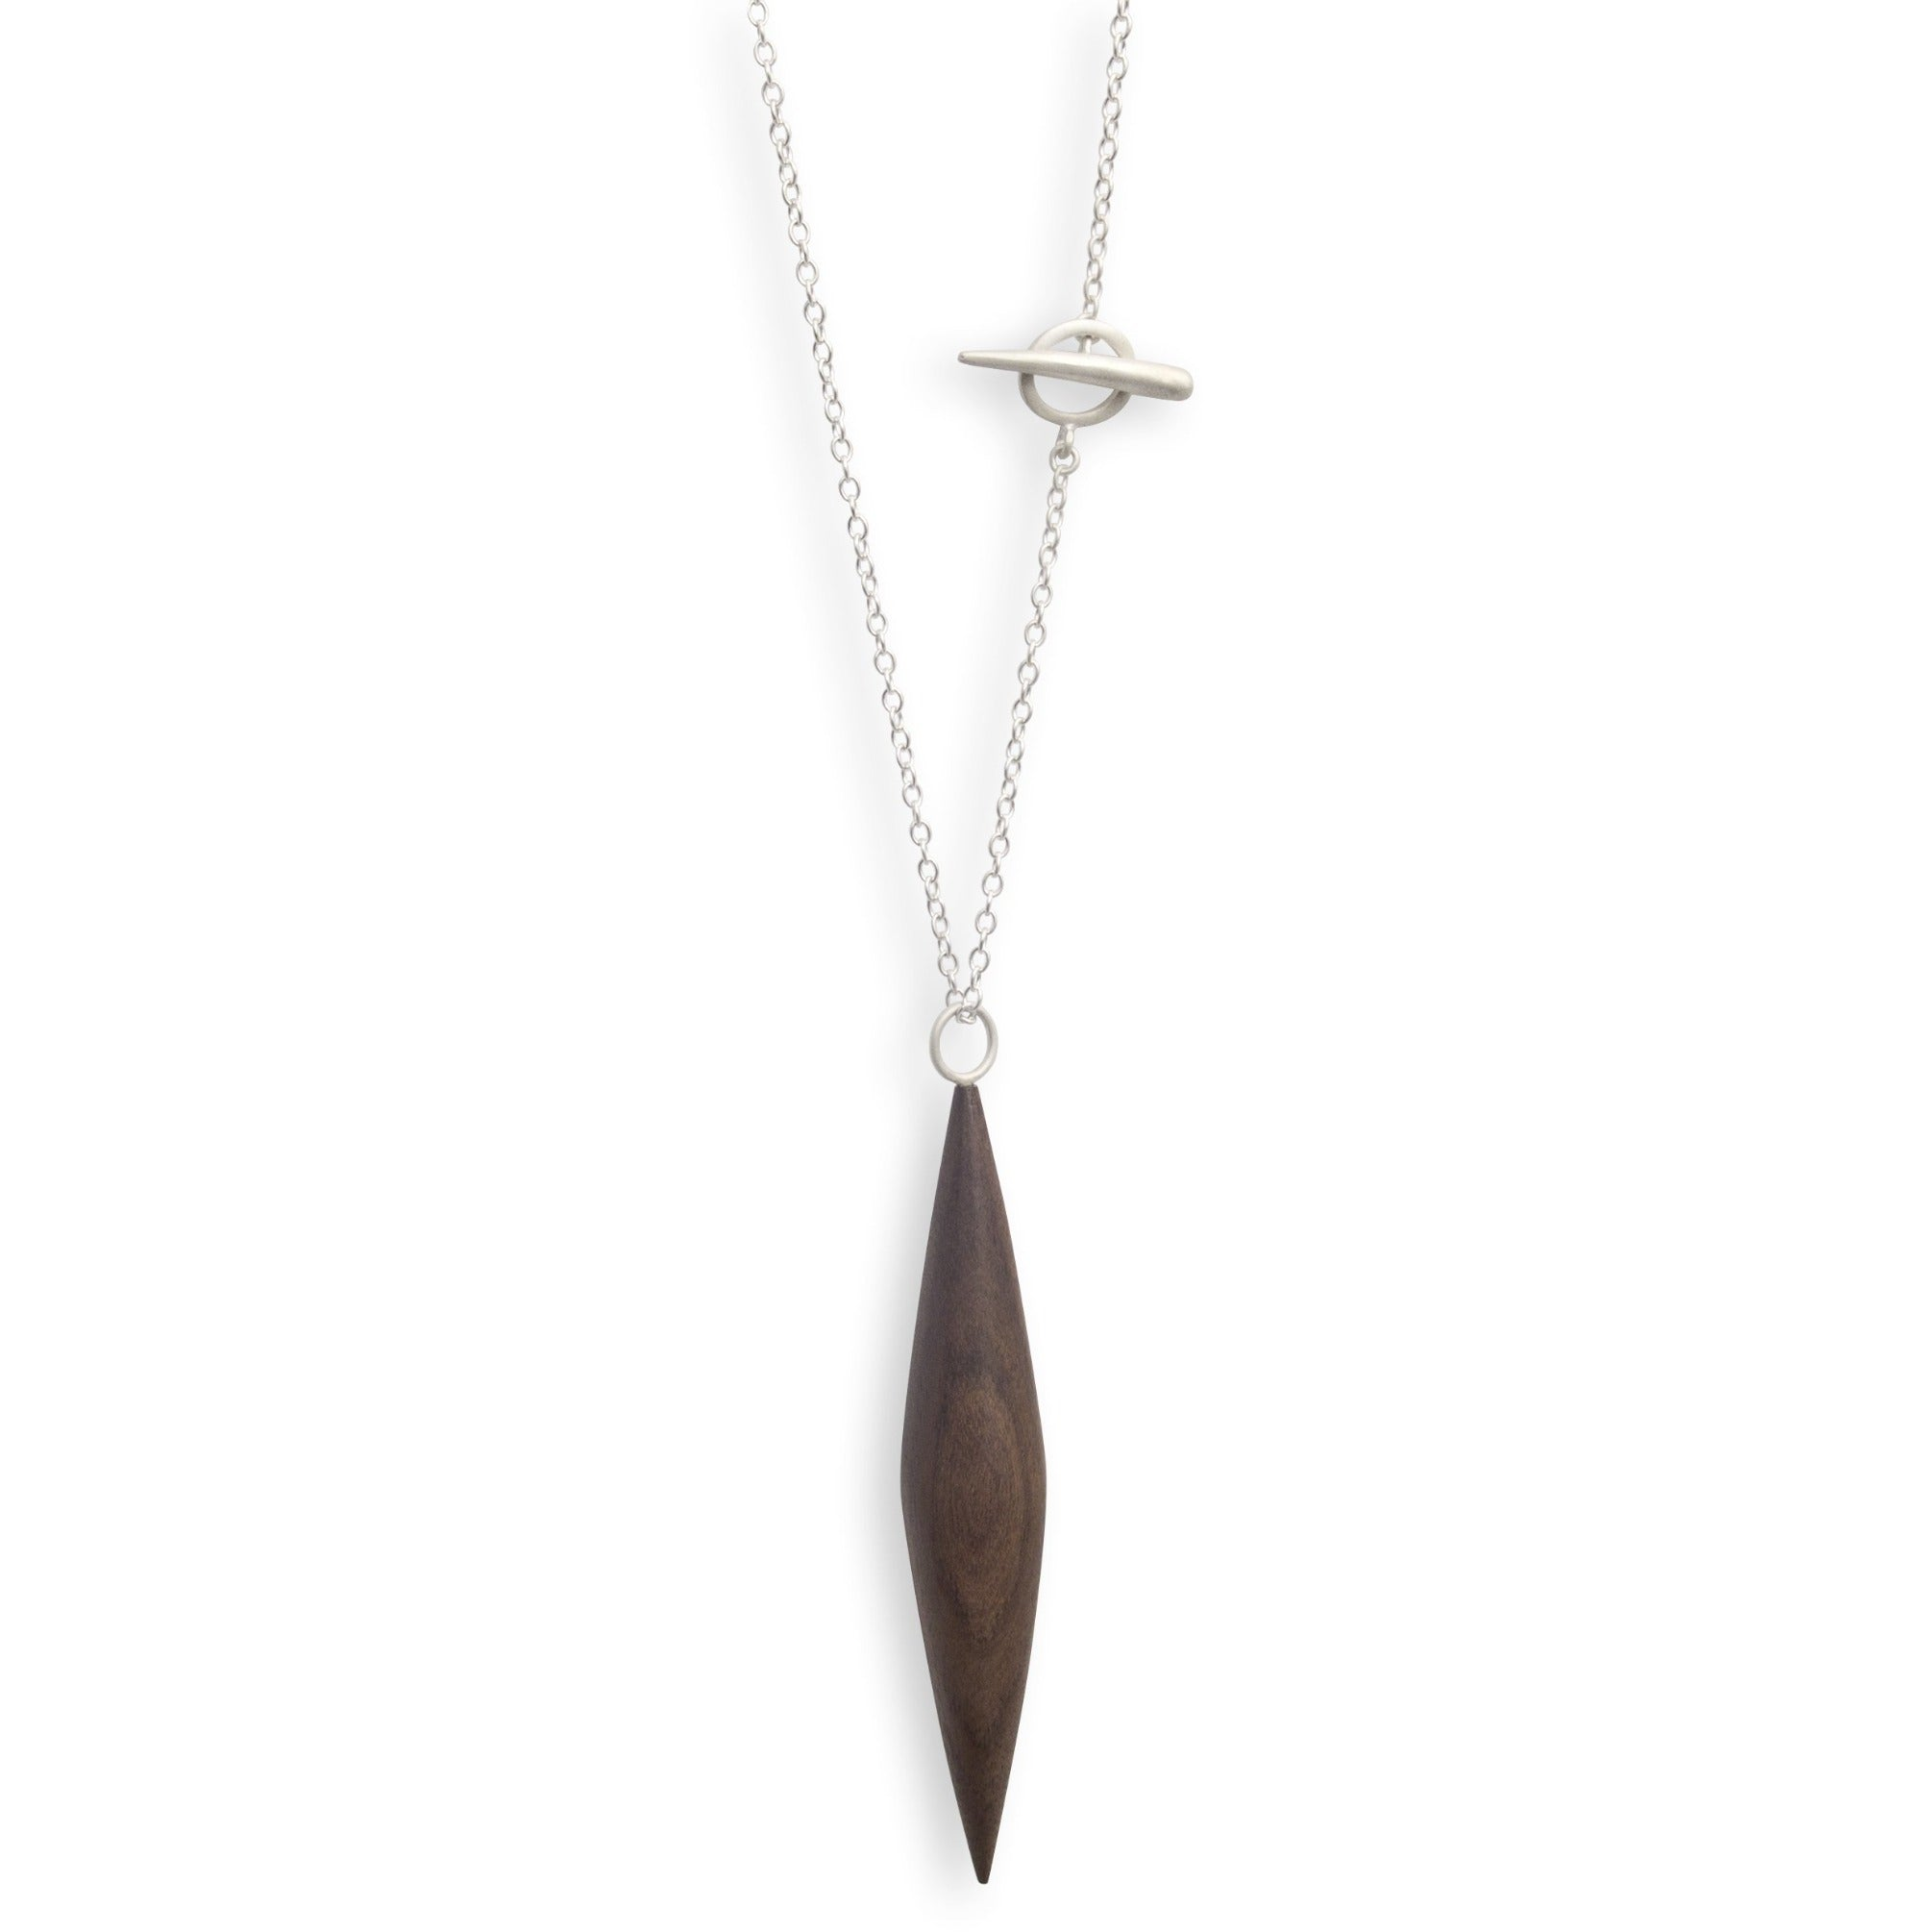 wood ficelle necklace